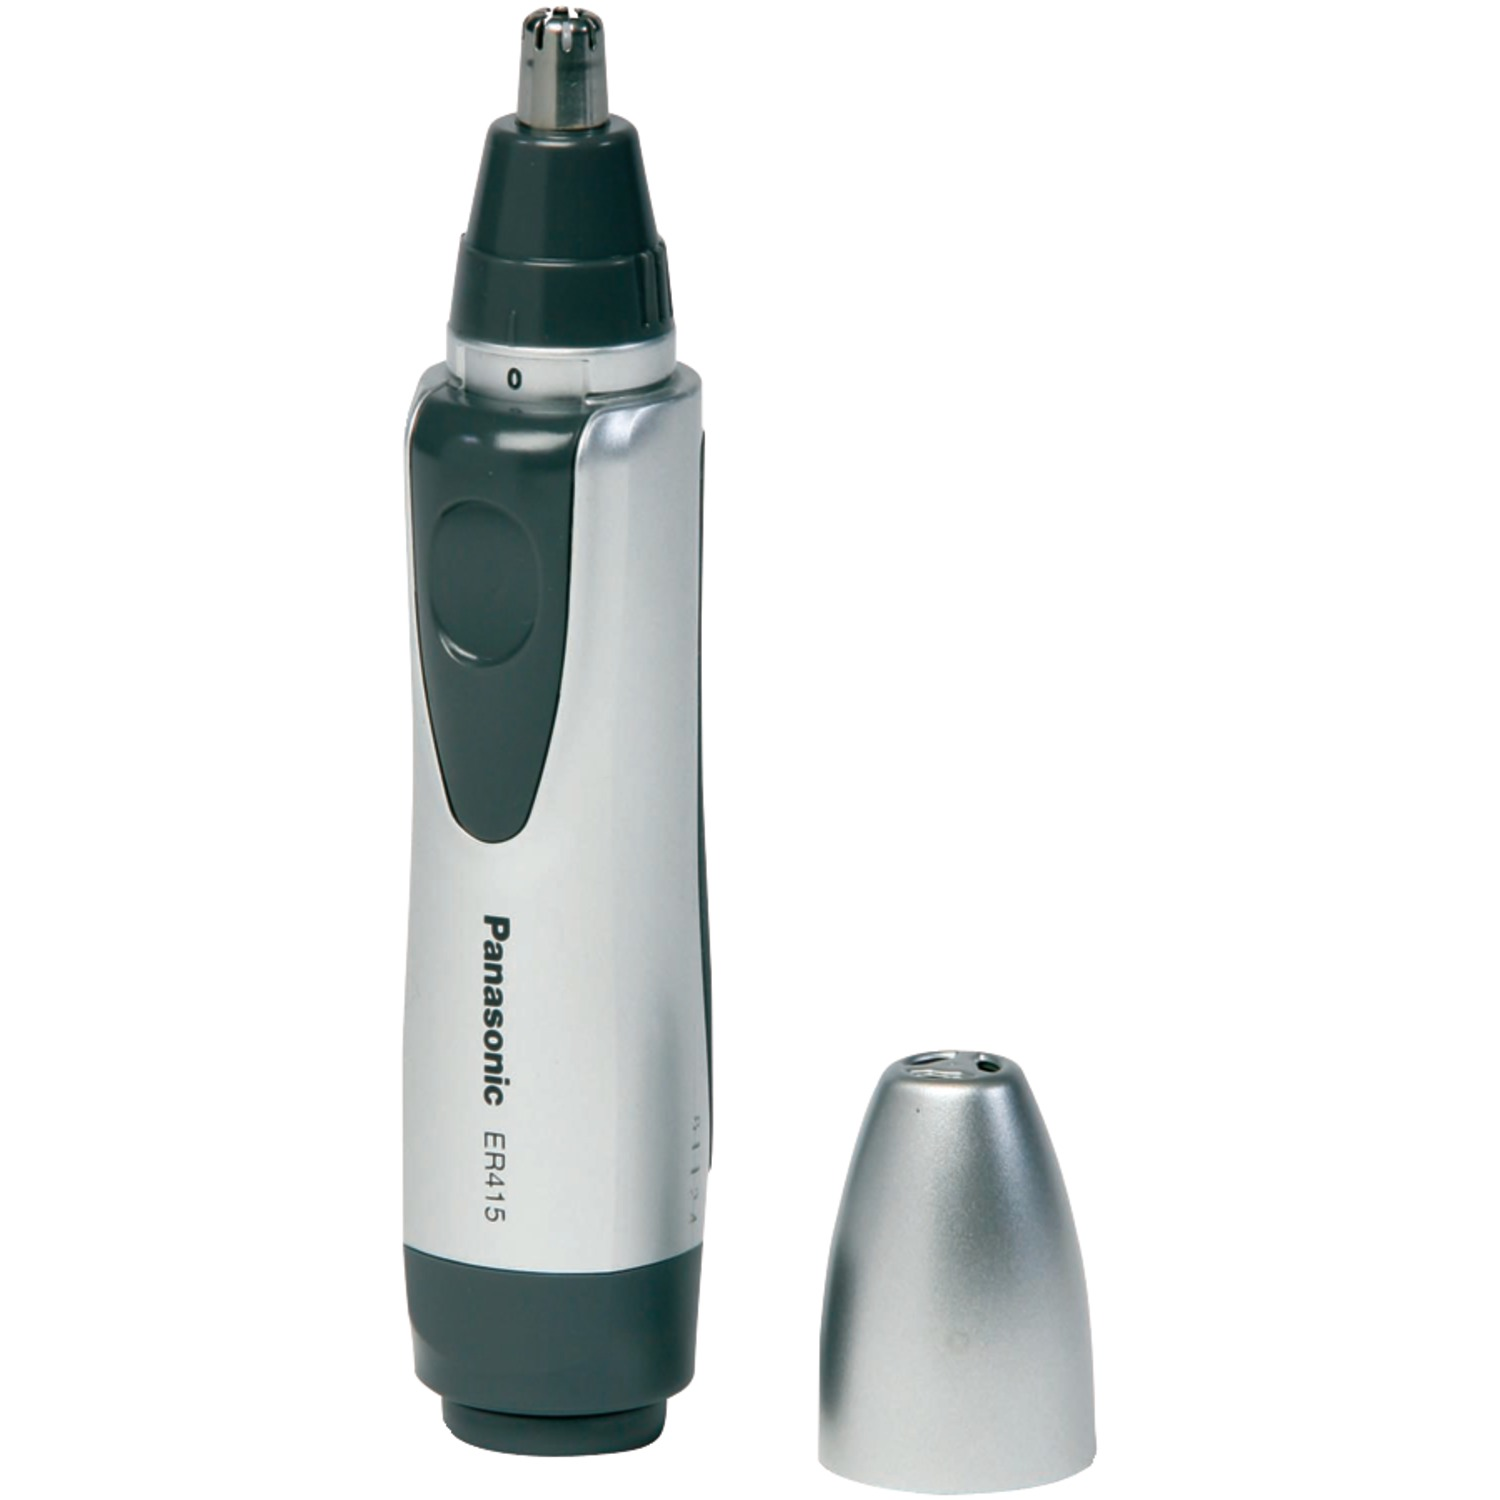 Panasonic Er415sc Nose & Ear Trimmer (without Accuracy Grooming Light)